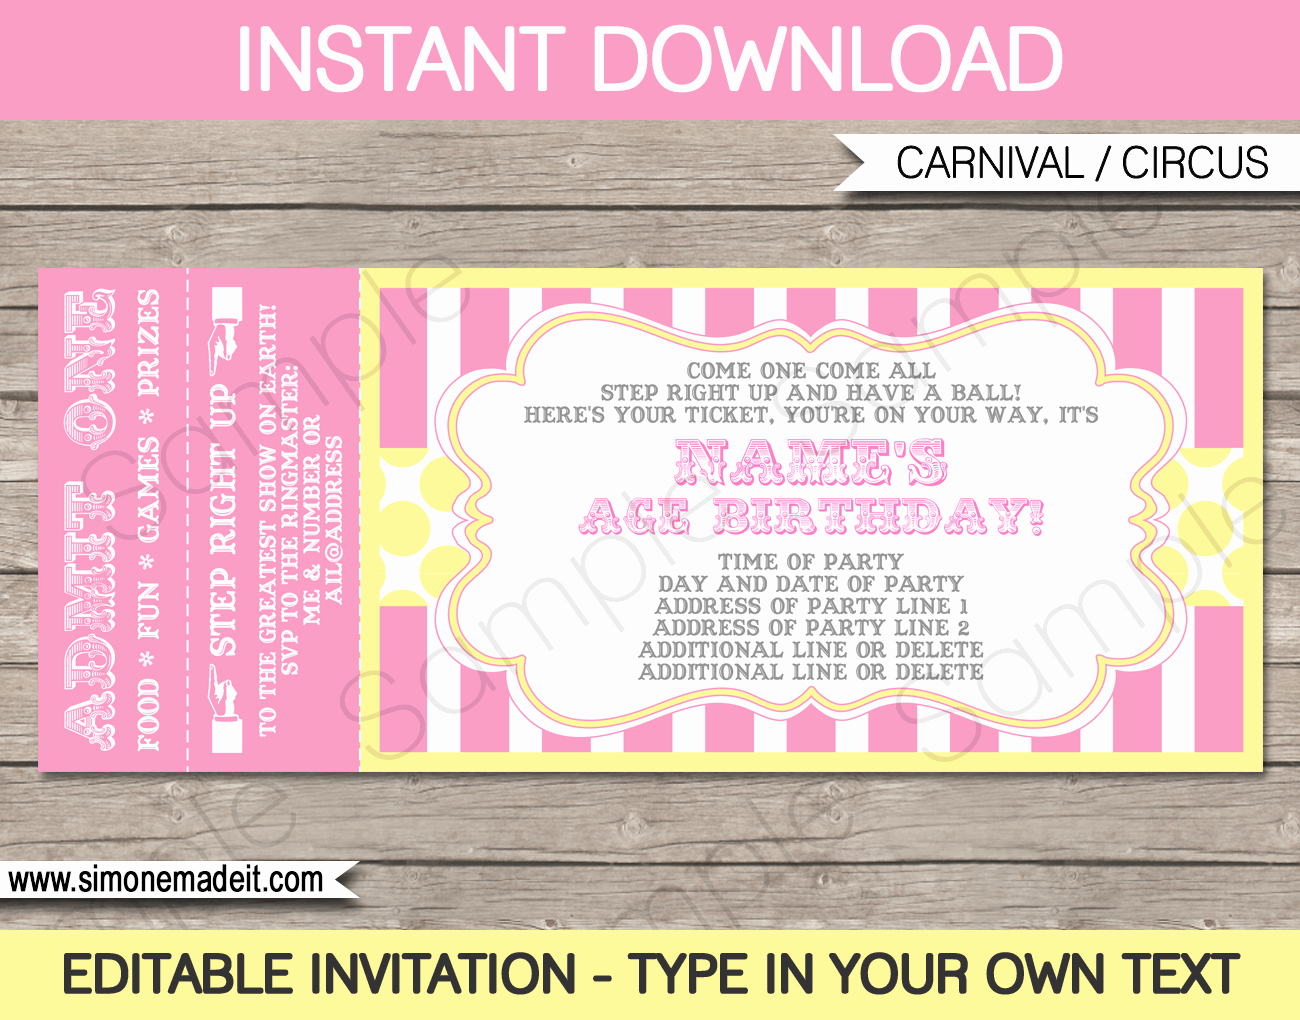 Carnival Ticket Invitation Template New Carnival Birthday Ticket Invitations Template